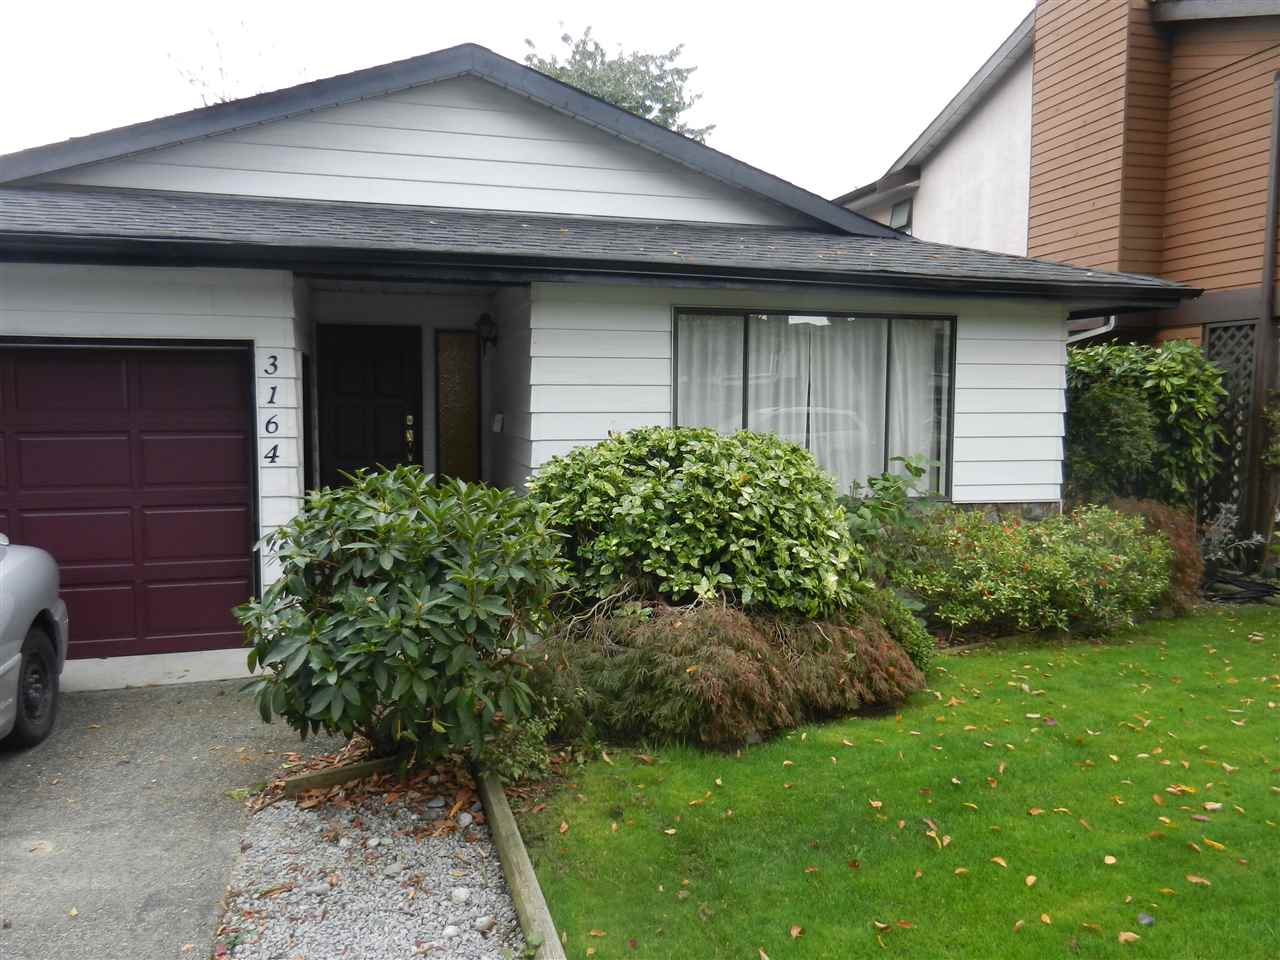 Main Photo: 3164 FREY Place in Port Coquitlam: Glenwood PQ House for sale : MLS® # R2113902